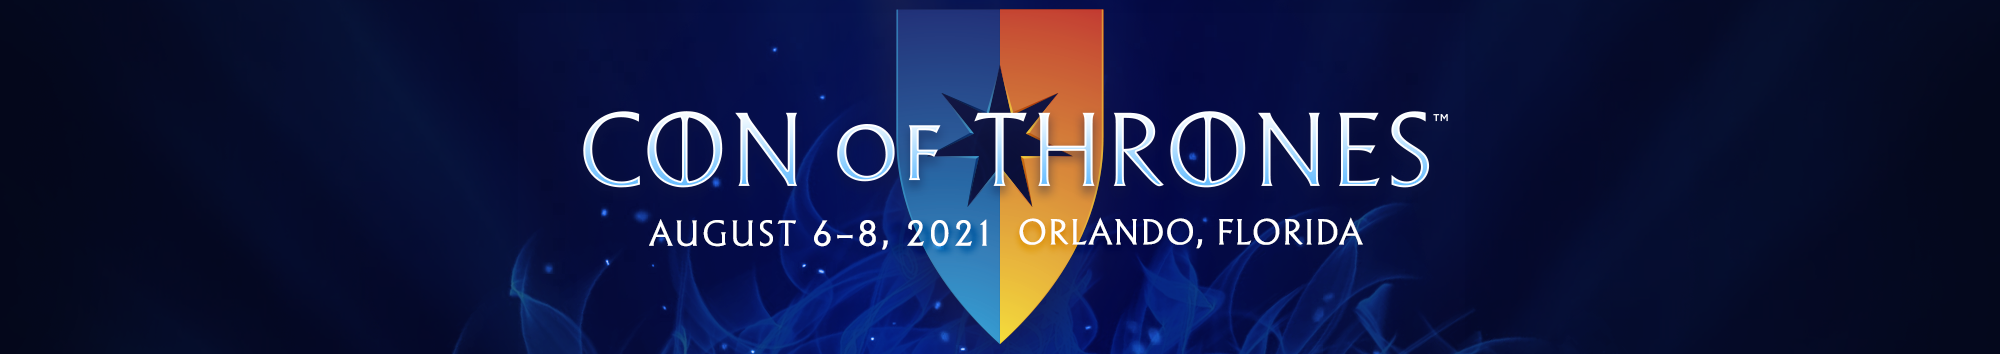 Tickets for Con of Thrones 2020 in Orlando from ShowClix